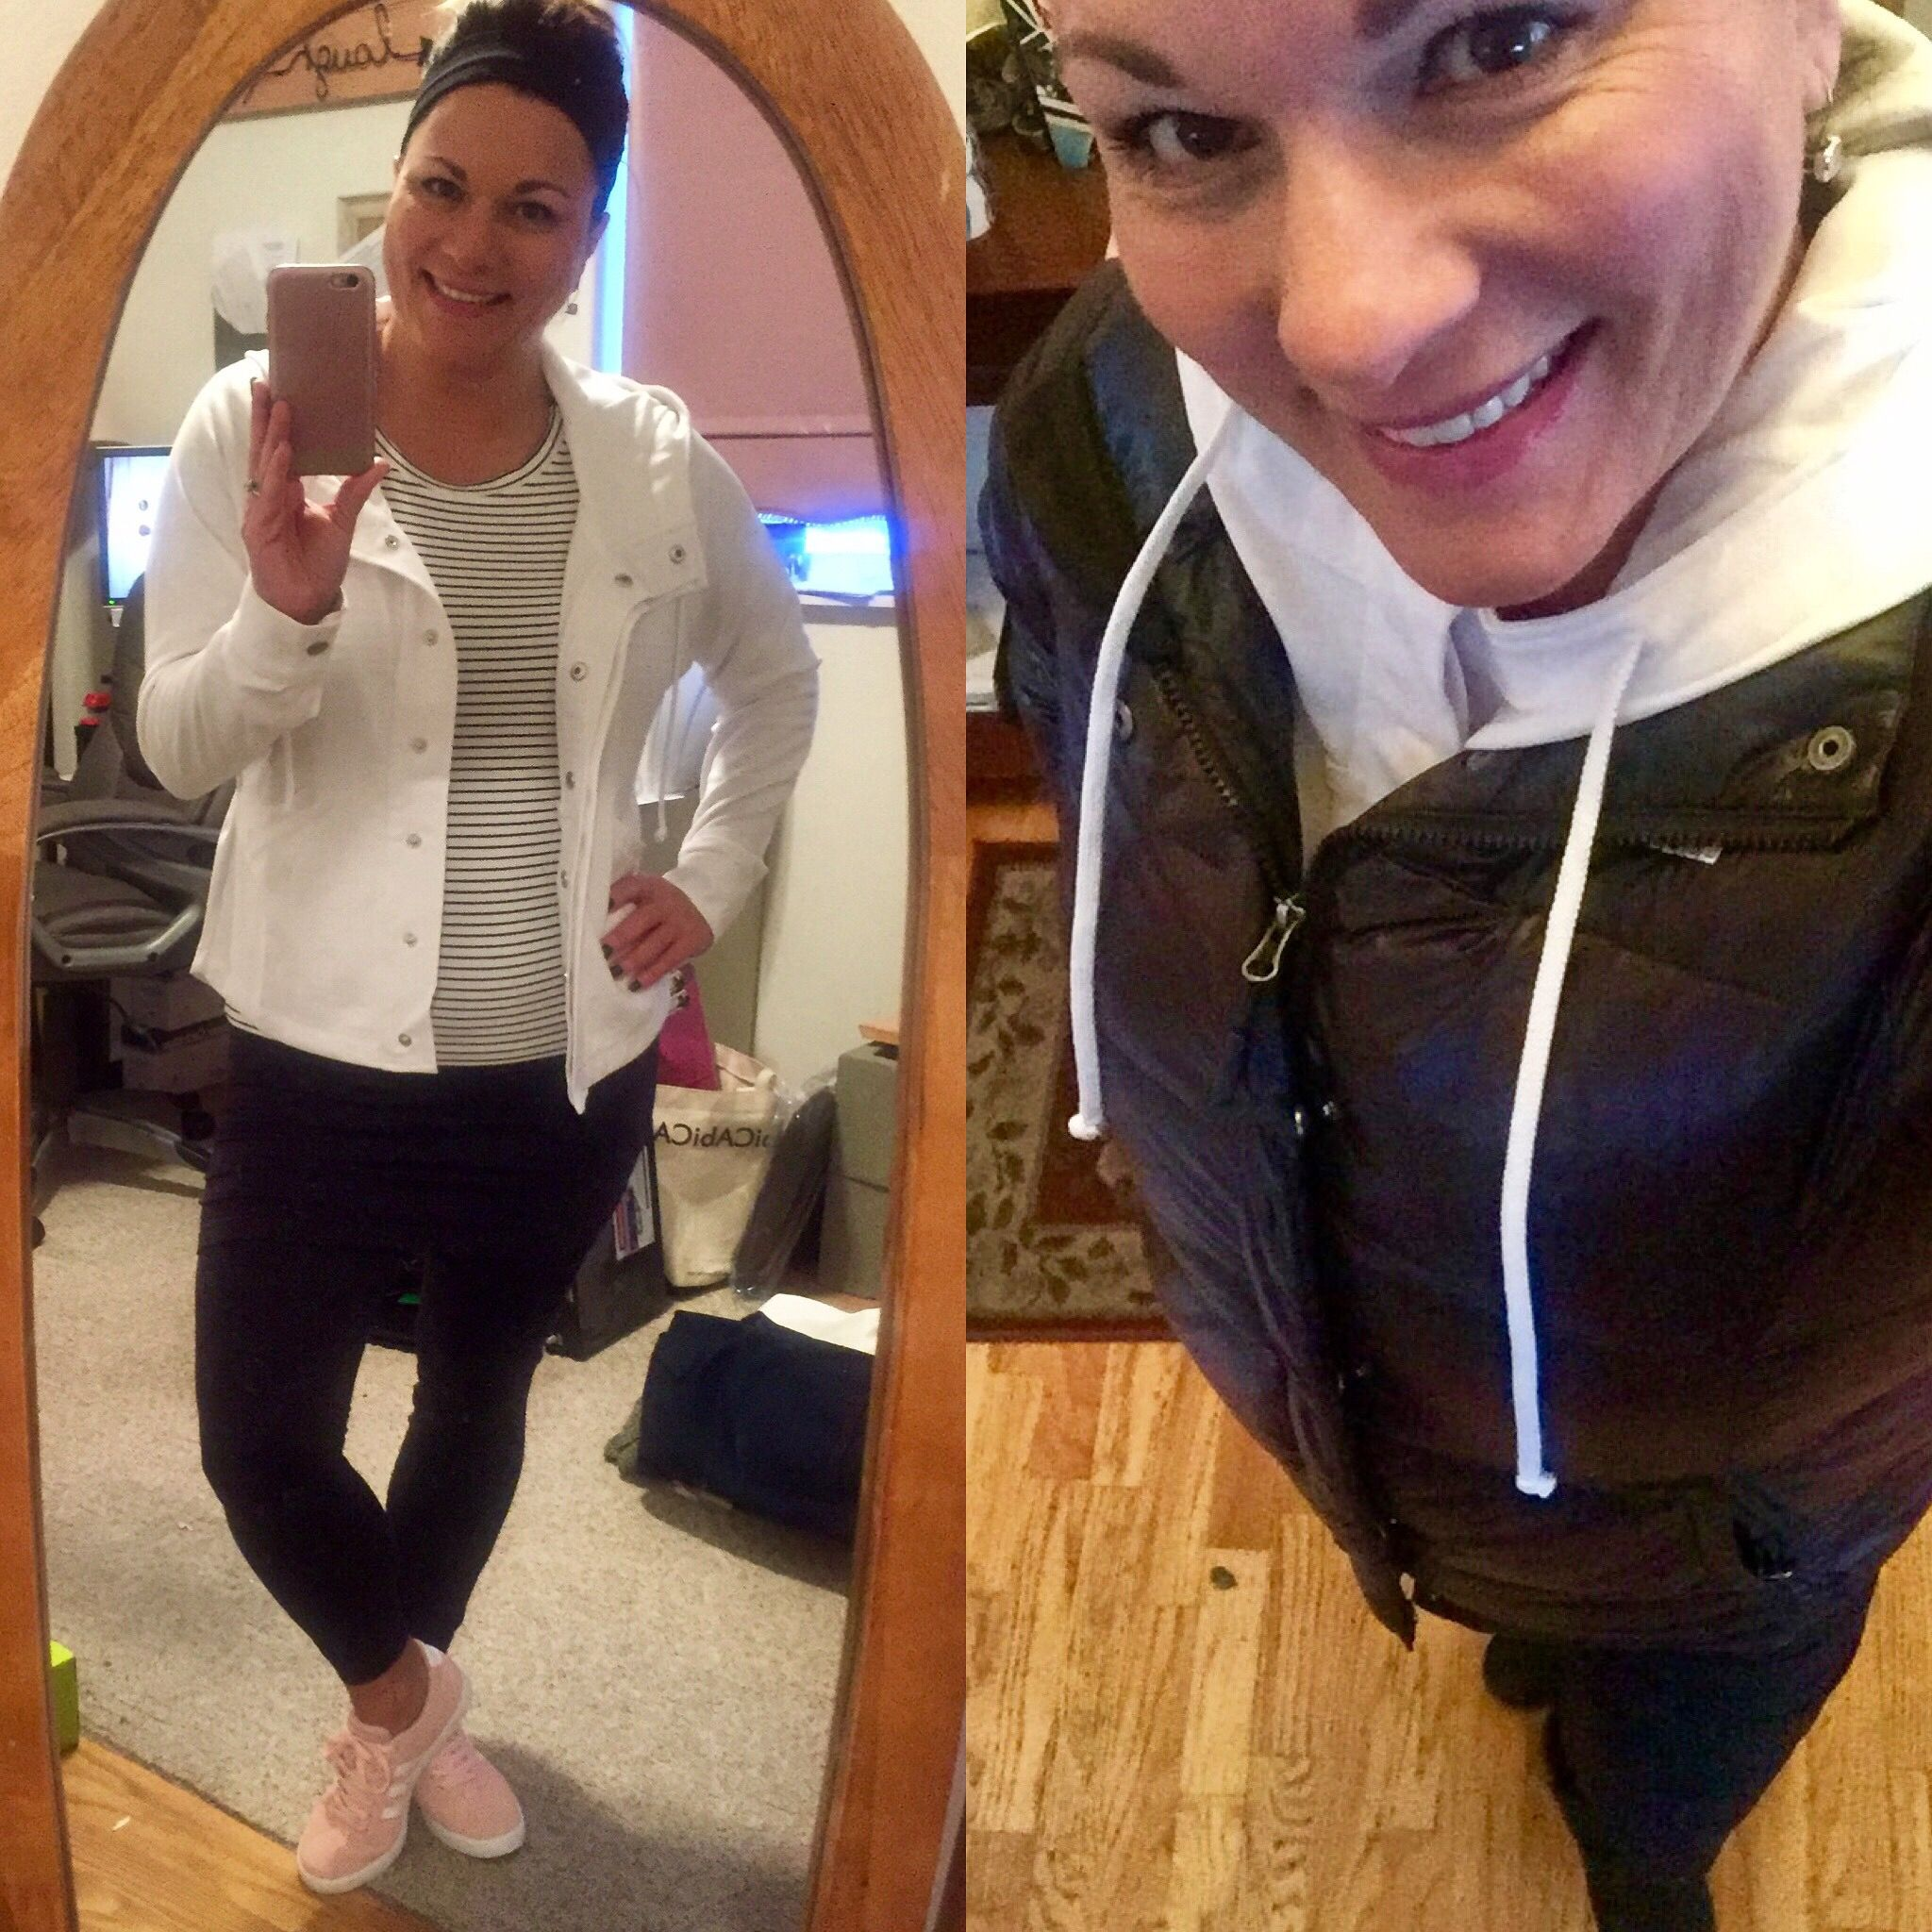 I'd love to say if you see me out and about today I'd look all springy like the left side of pic but since it's -13 on my car now, I'll look the right side...brrr!! #cabiclothing #sohohoodie #zipcroptop #spacedyemleggings #adidasneo #northface #ugg #carpenterallin #jenesaisquoi